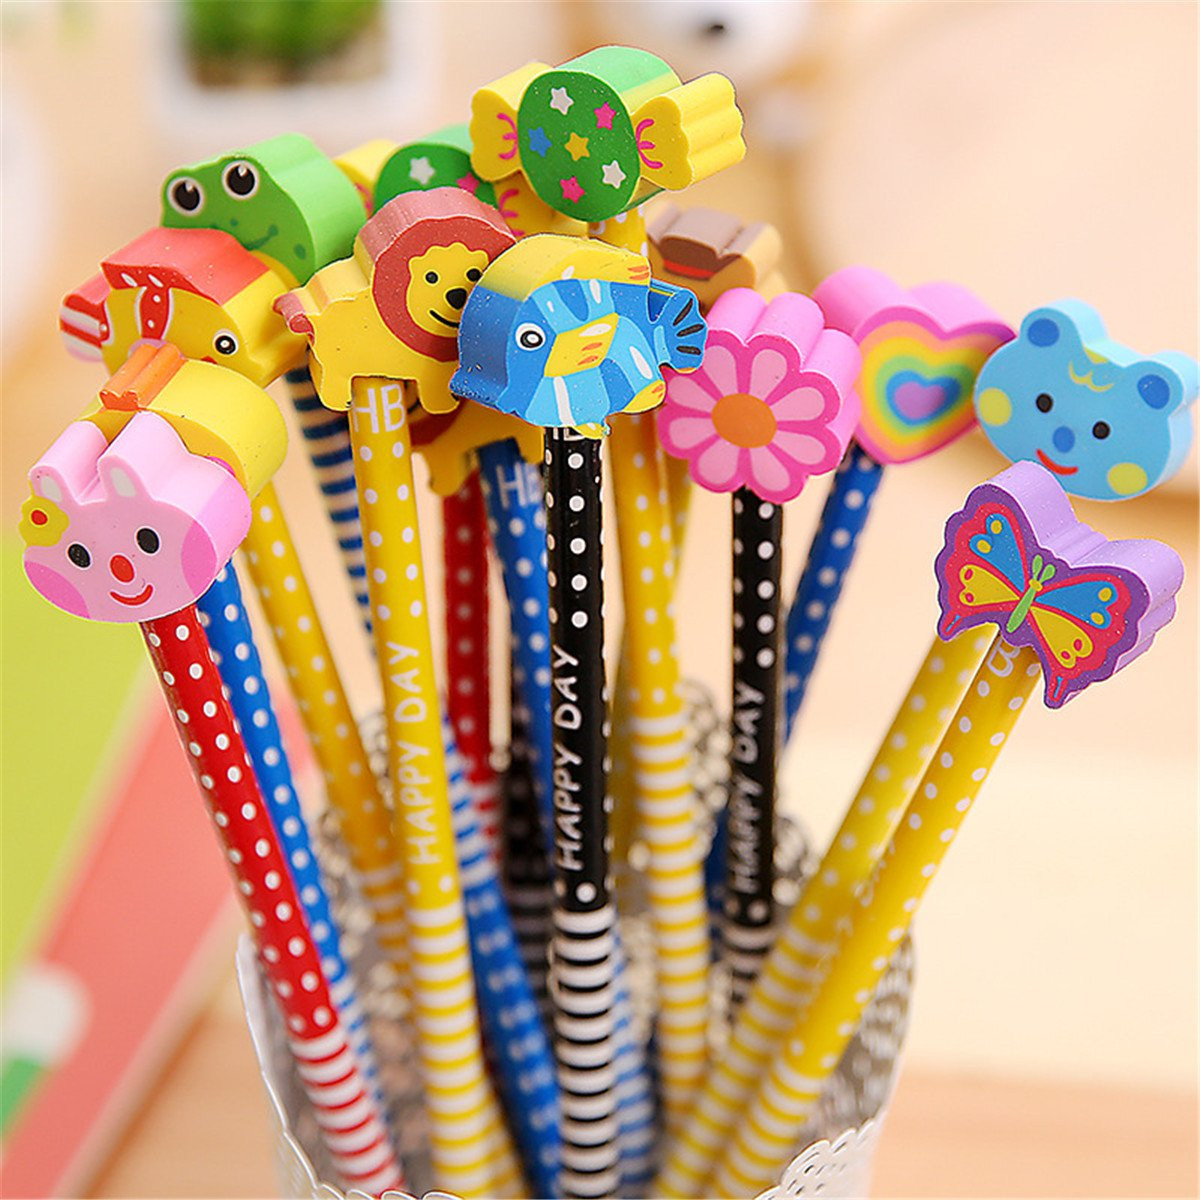 Pack of 40 Colorful Novelty Cartoon Animals' Stripe Eraser Wood Pencils 7.28'' for Office School Supplies Students Children Gift (40pcs cartoon pencil with eraser) by Yansanido